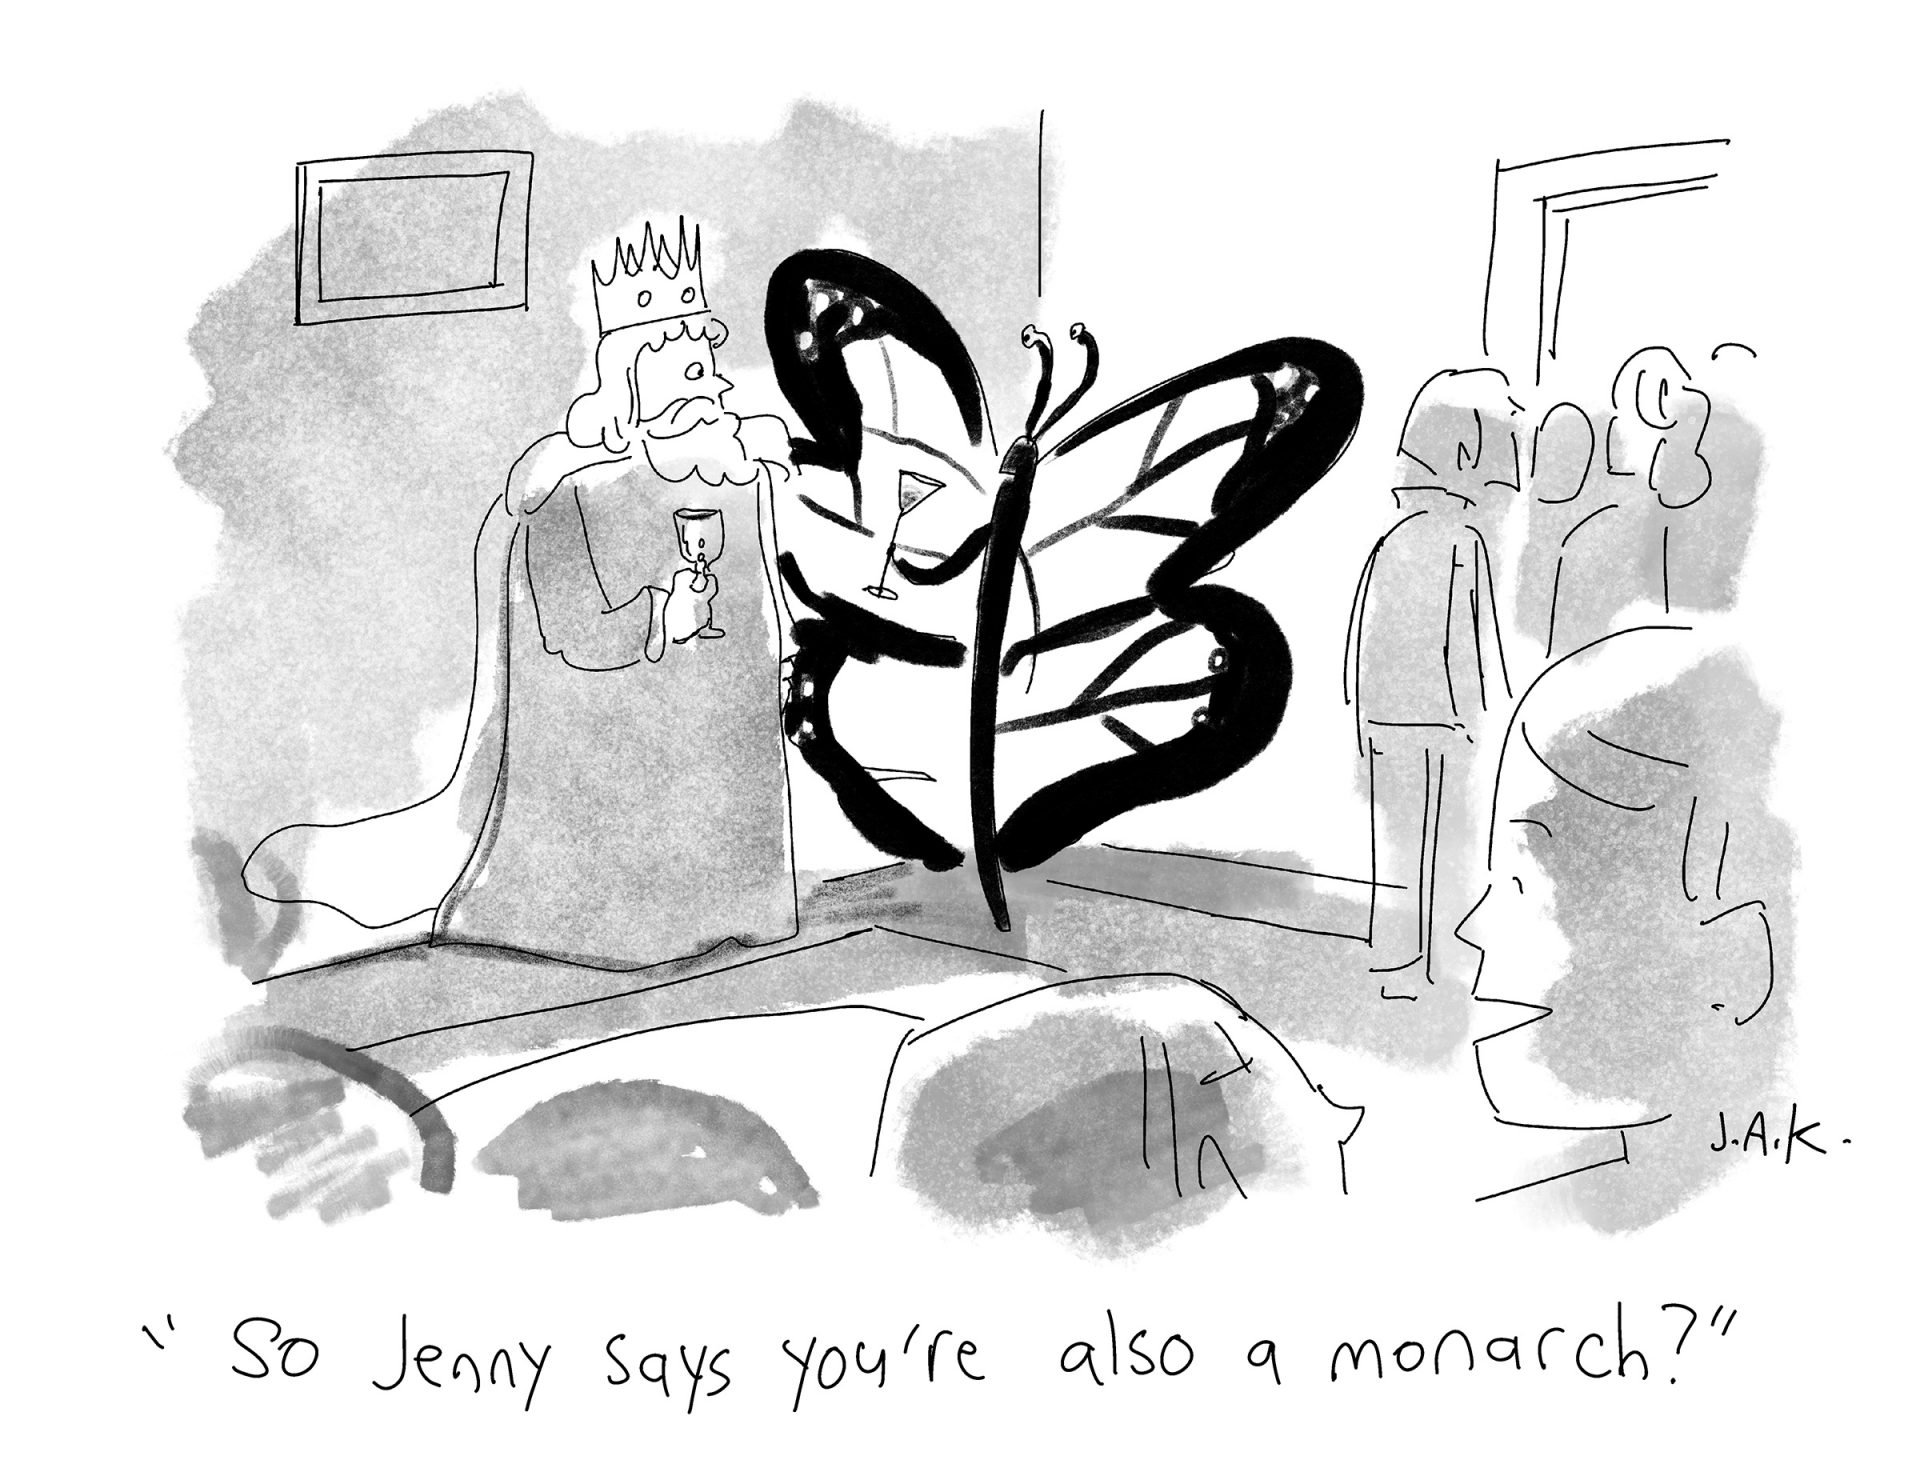 monarch cartoon